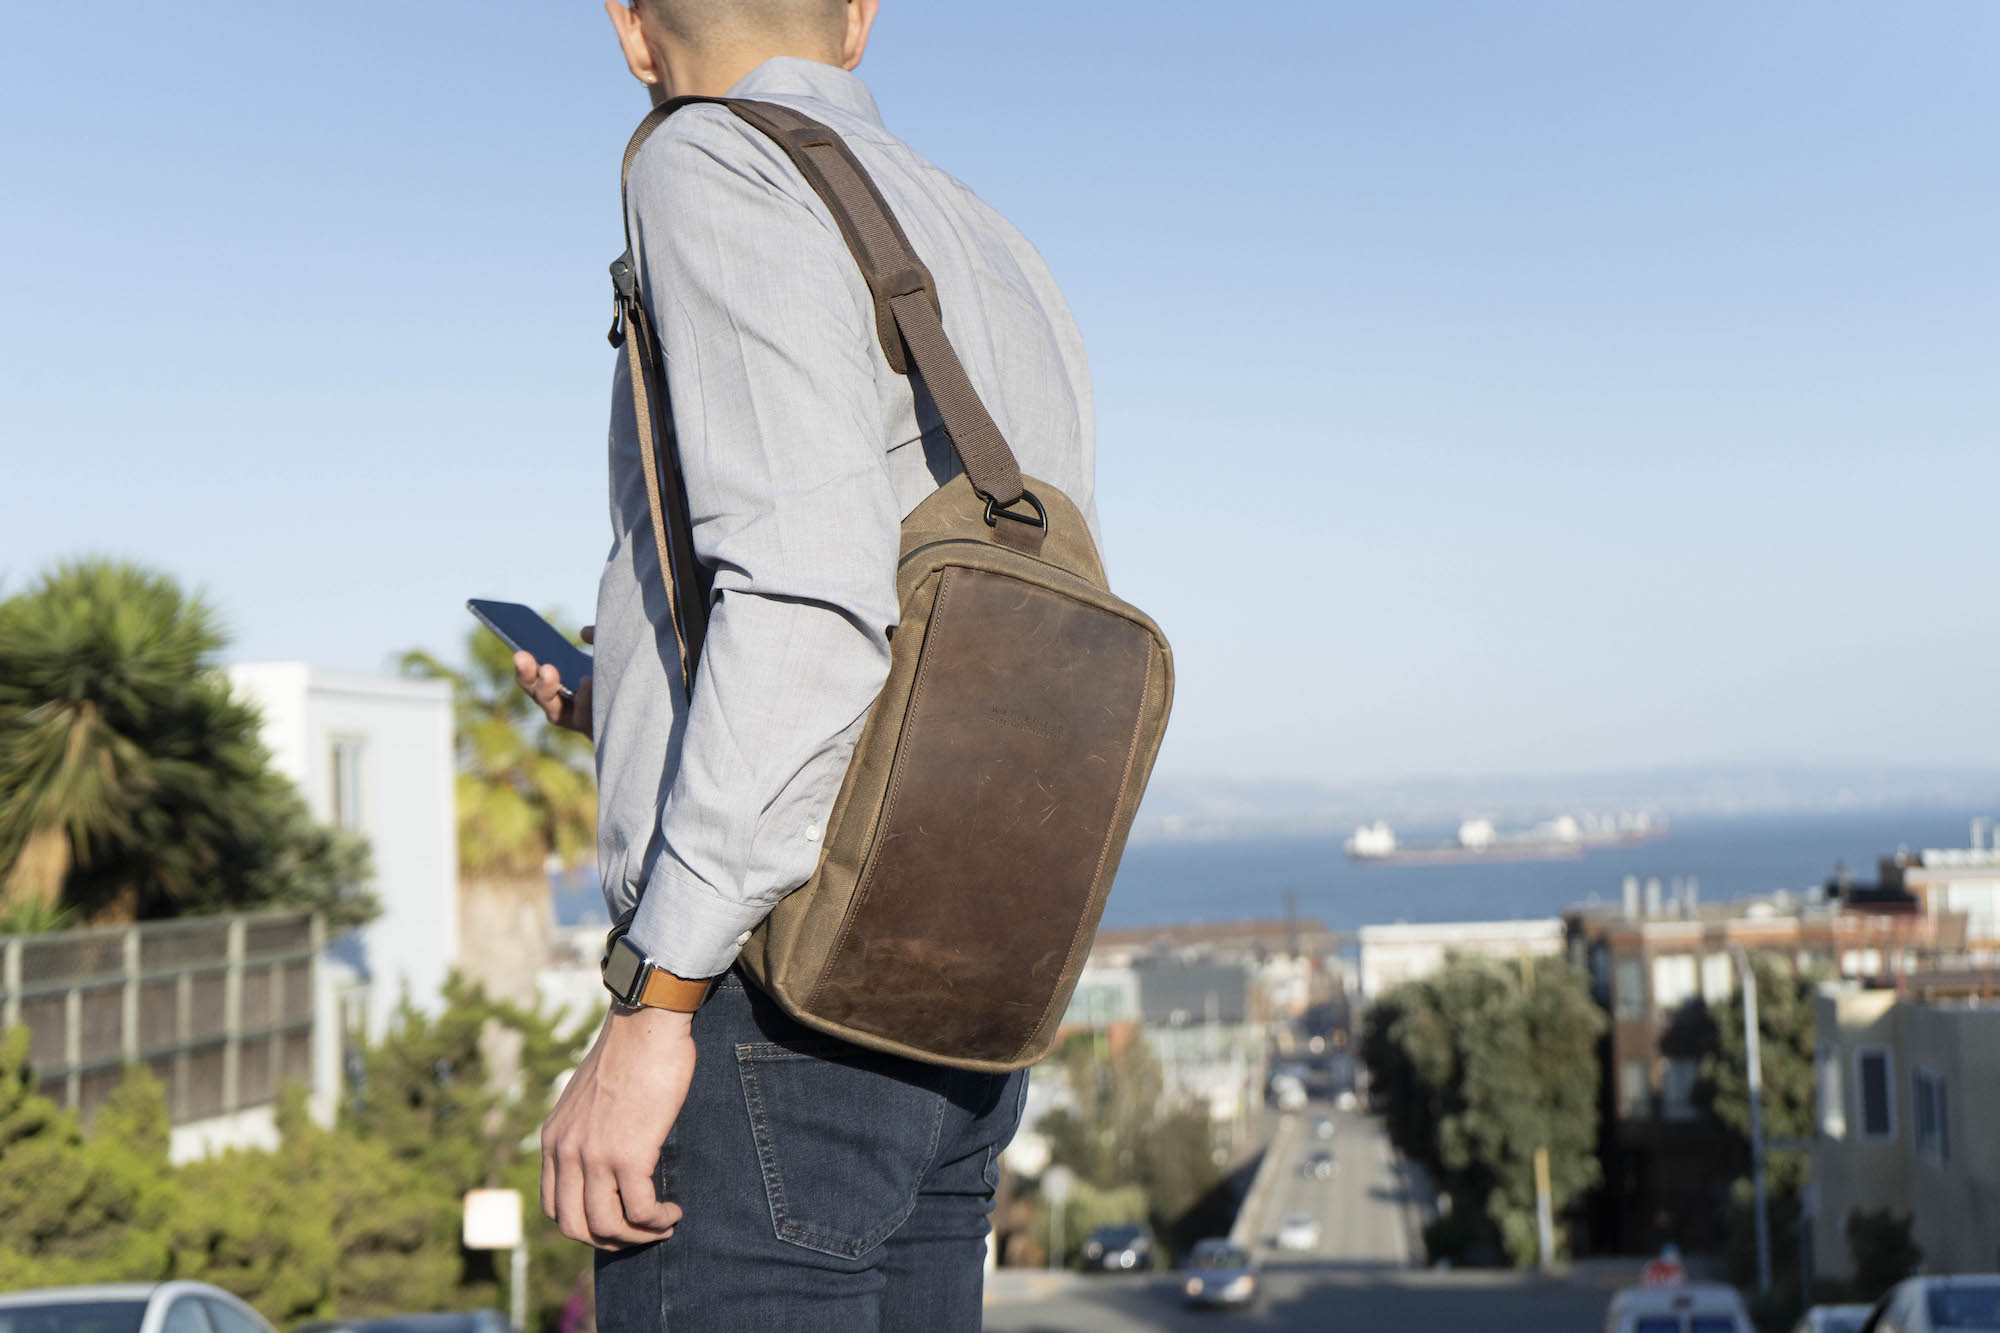 Sutter Tech Sling Bag for iPad Pro and MacBook Air